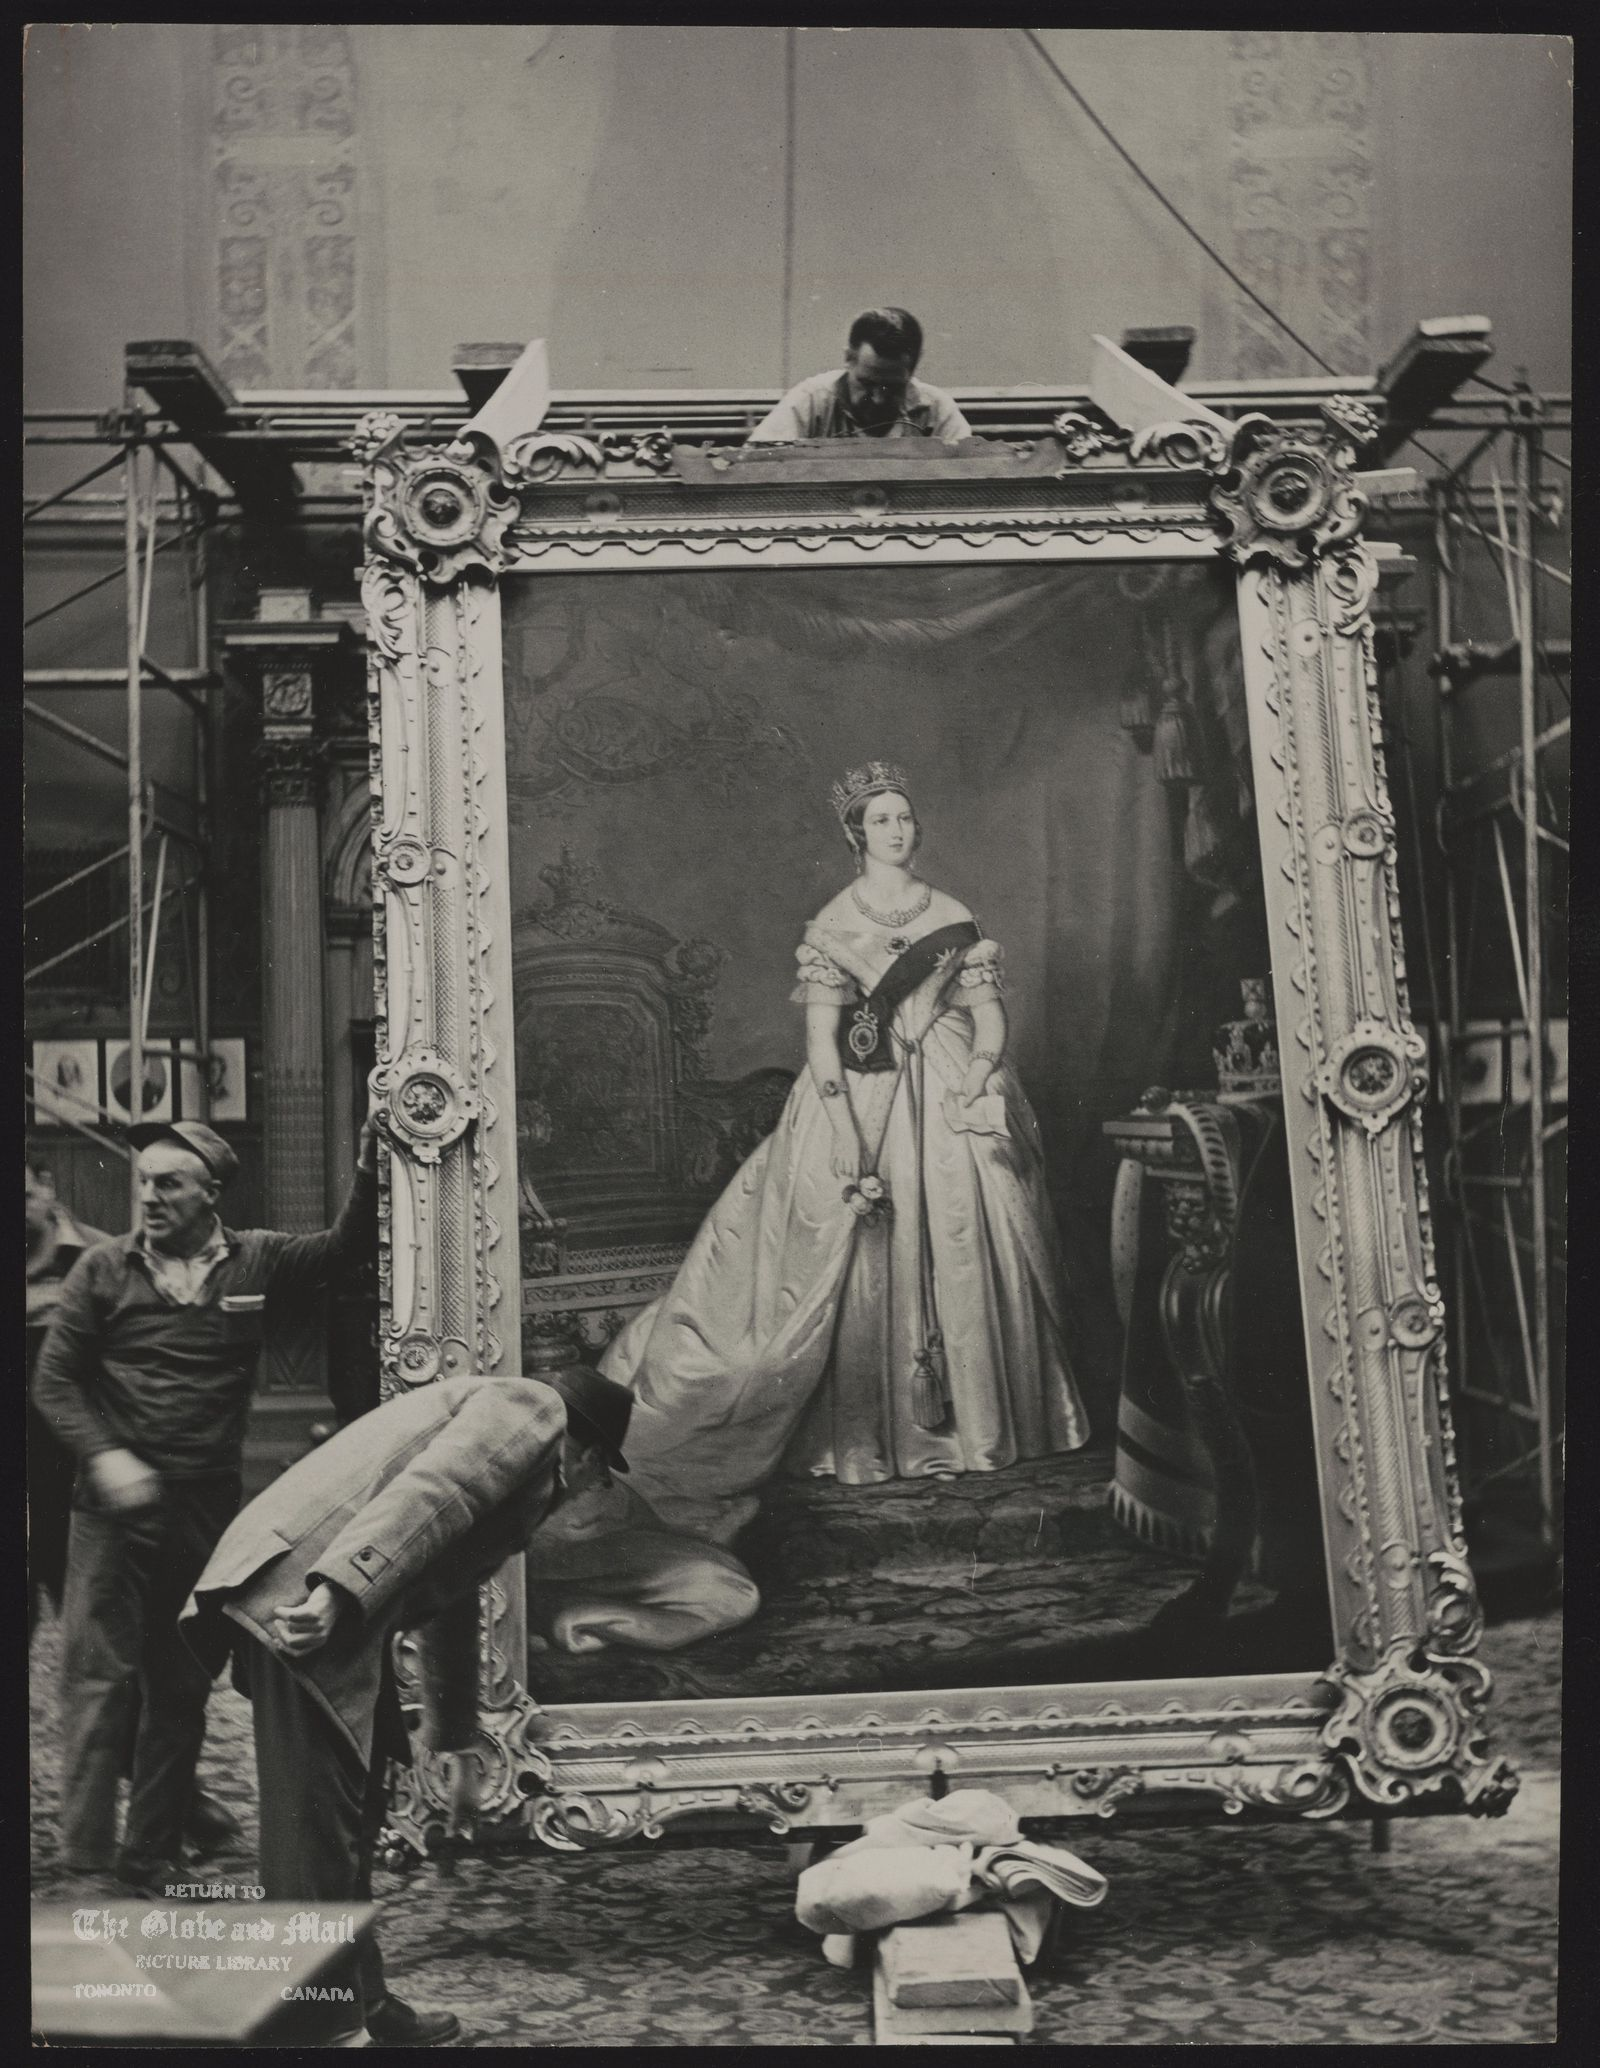 The notes transcribed from the back of this photograph are as follows: City Council painting of Queen Victoria begins three-day journey to new home in osgoode Hall.